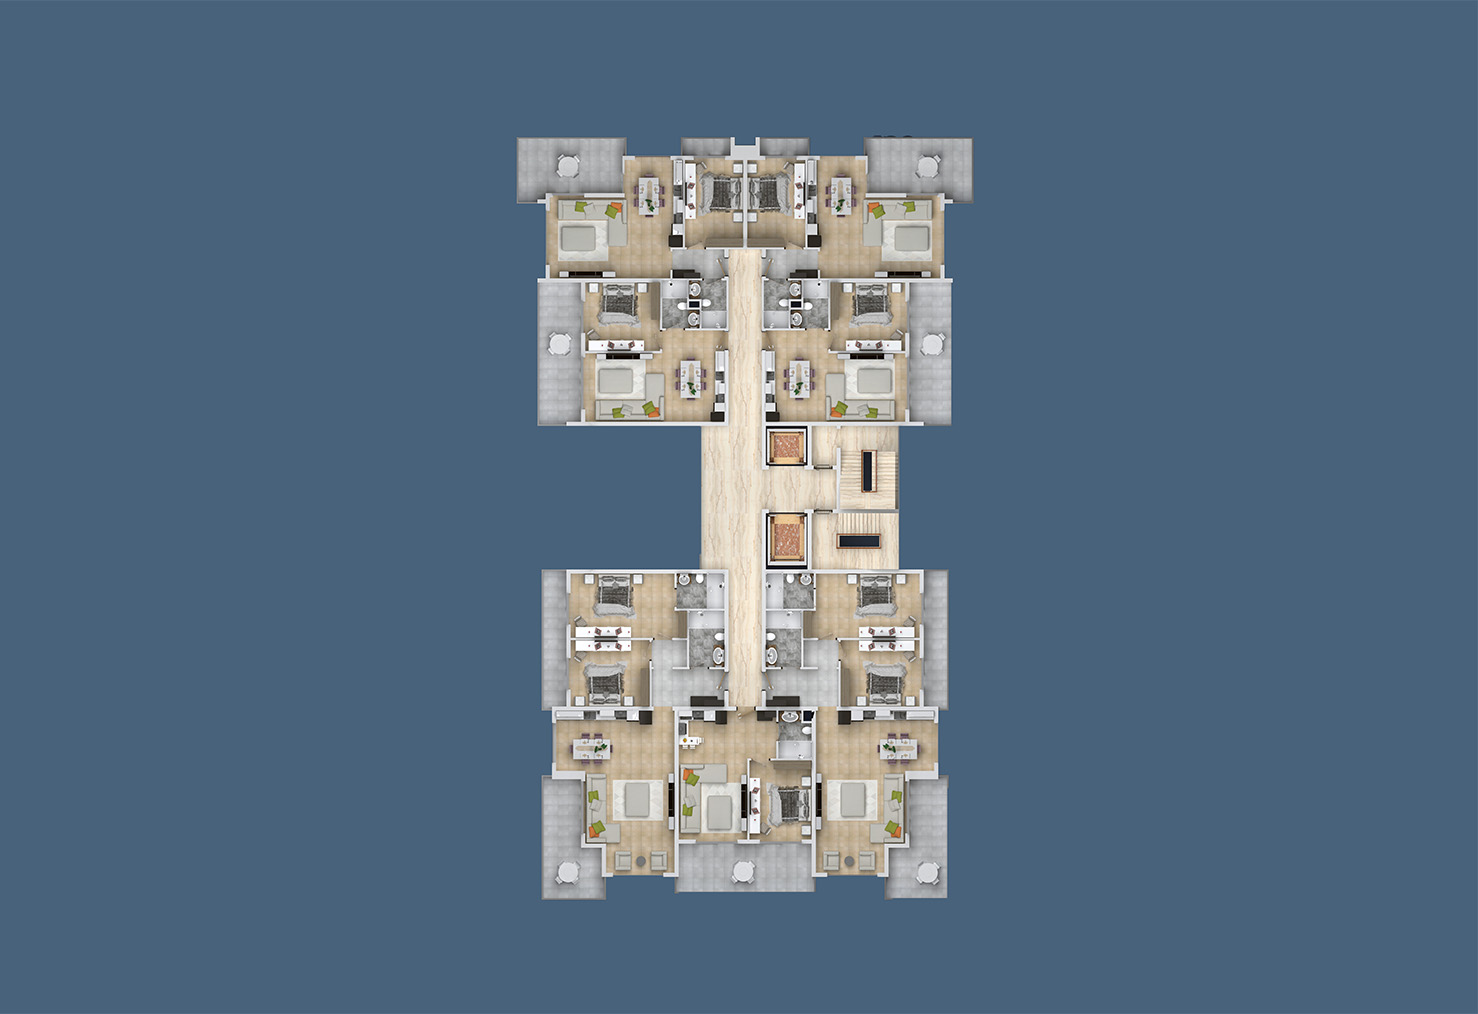 Floor plans of apartments 4 floor «A» Yekta Kingdom Trade Center